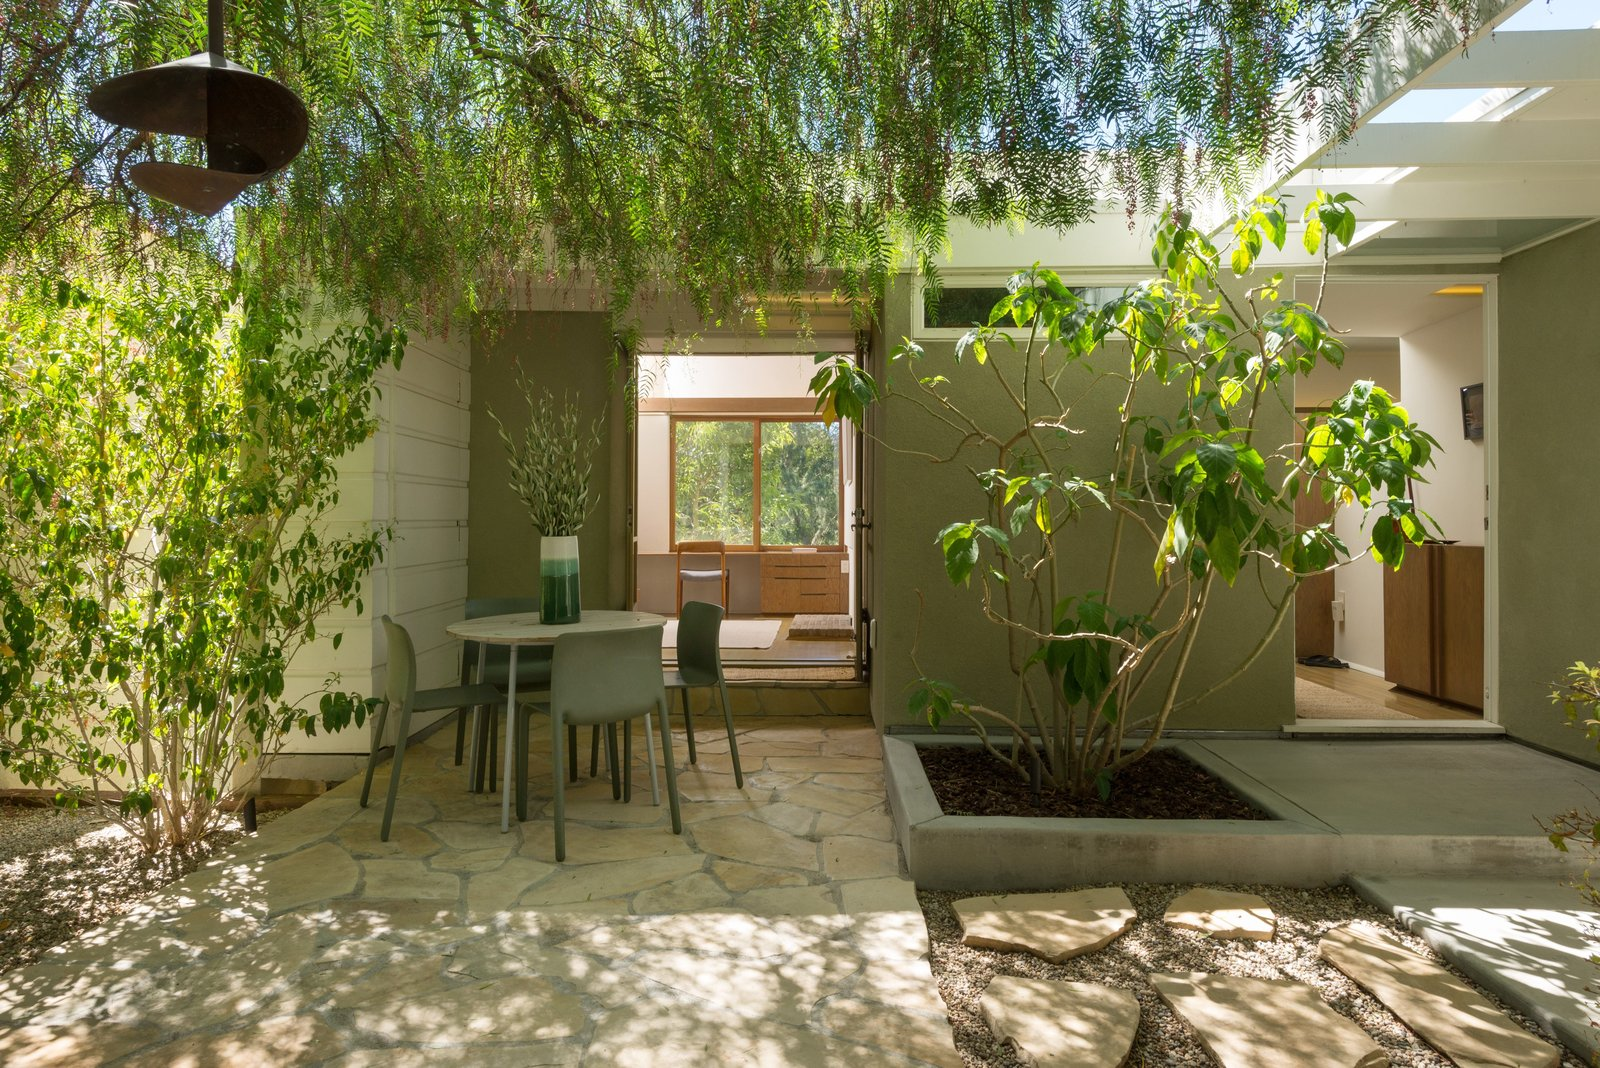 Outdoor, Hardscapes, Trees, Back Yard, Small Patio, Porch, Deck, Concrete Patio, Porch, Deck, Stone Patio, Porch, Deck, Pavers Patio, Porch, Deck, and Hanging Lighting A look at the shaded outdoor space.     Photos from Own This Charming 1941 Midcentury in L.A. For $1.9M